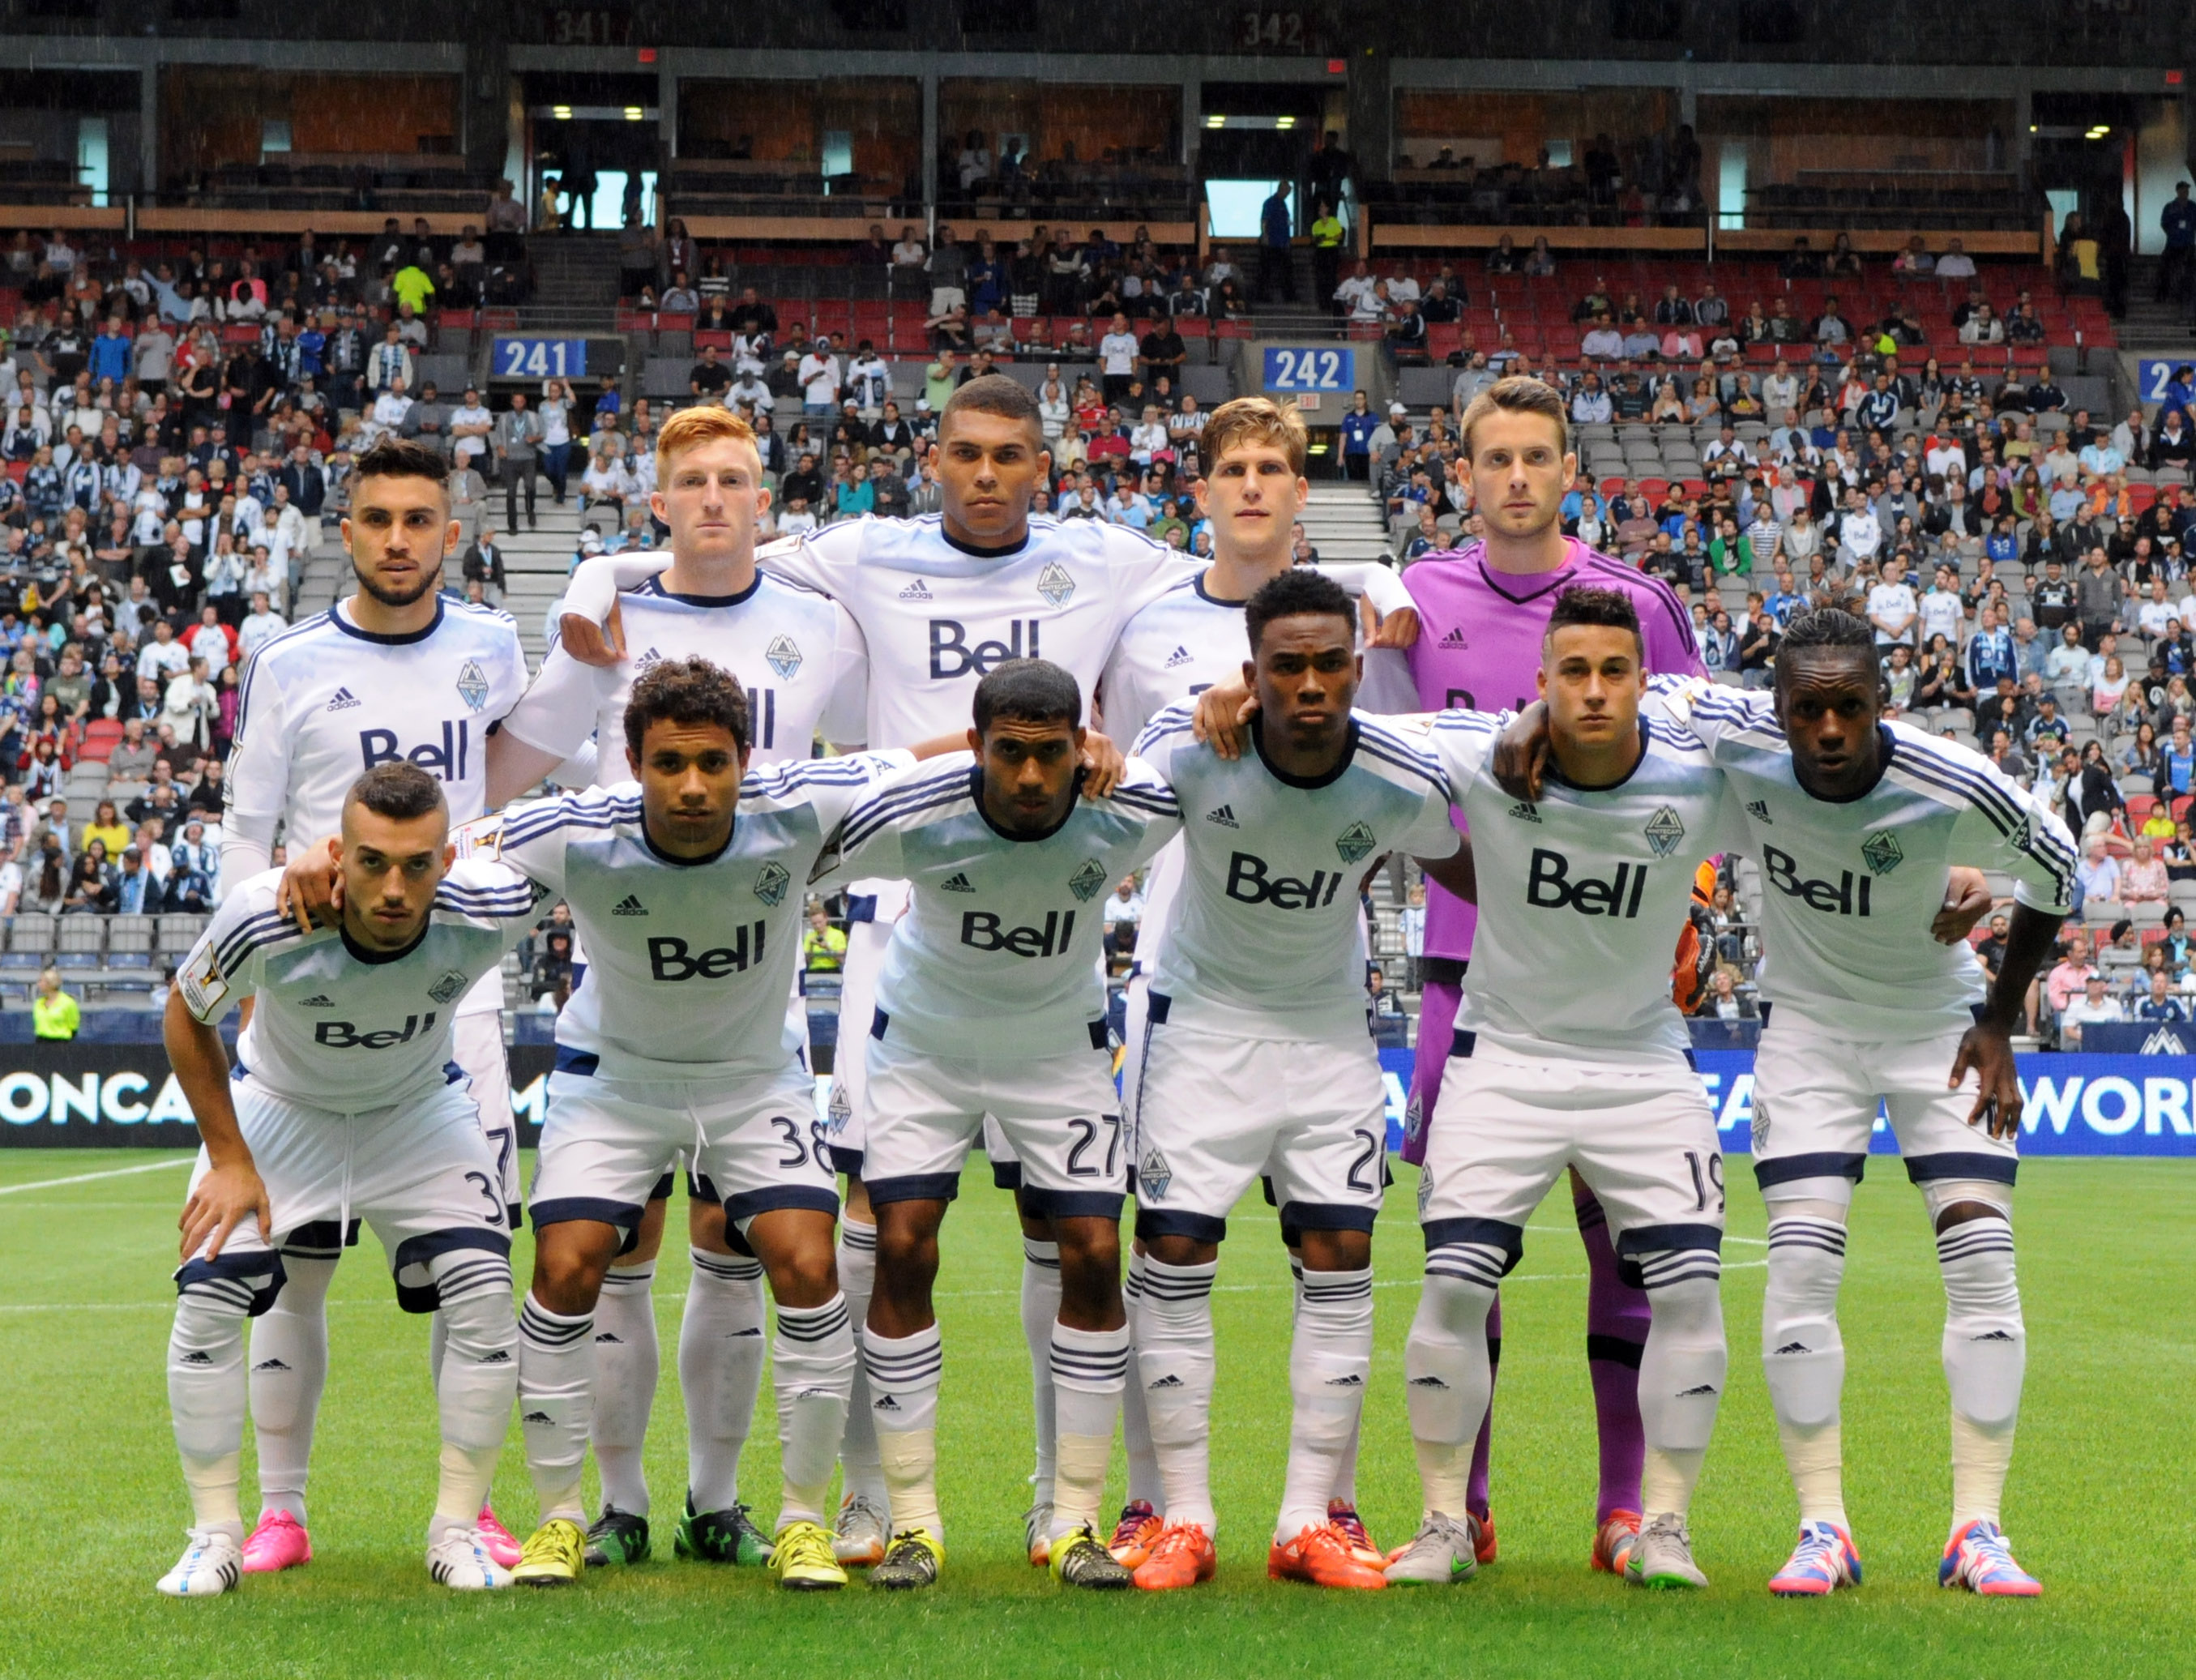 The first ever CCL match for the Whitecaps featured a starting XI with many young players. Can youth take Vancouver deep into this year's CCL?